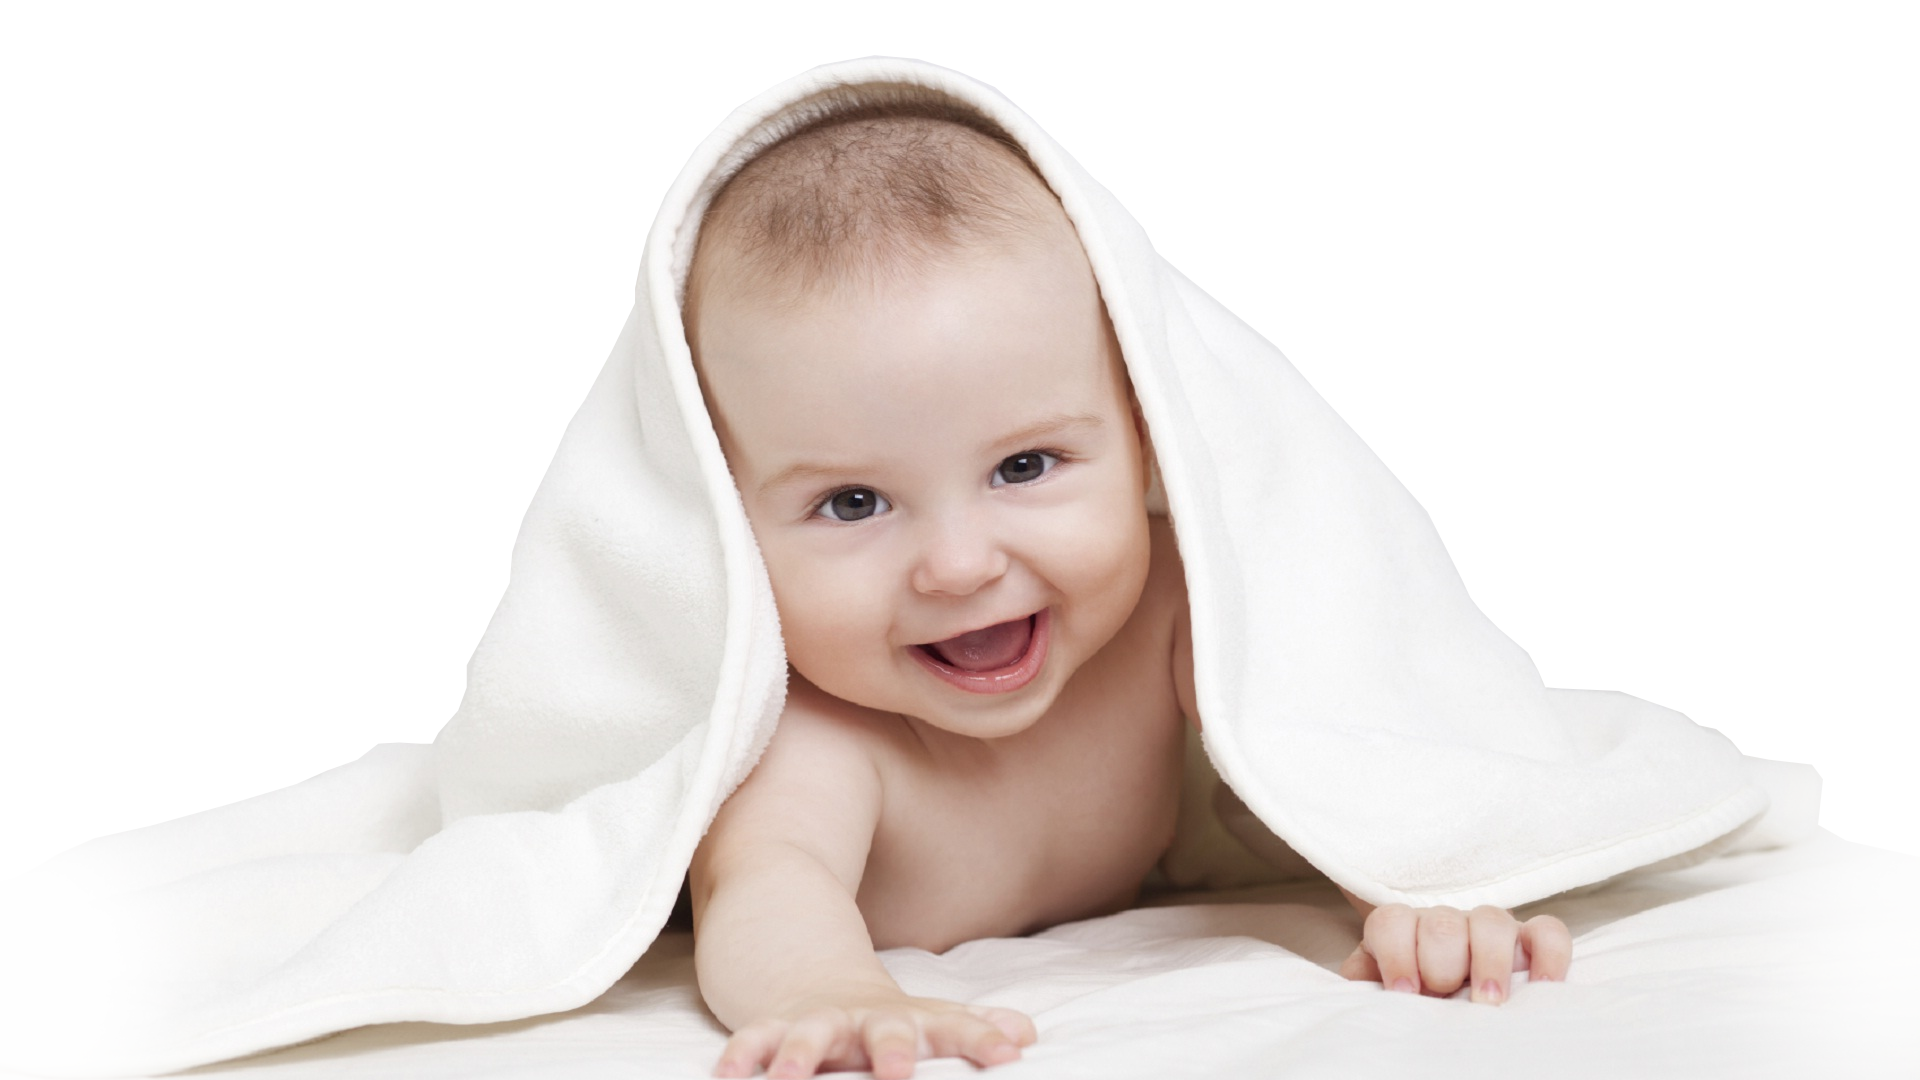 baby free images - PNG HD Pictures Of Children